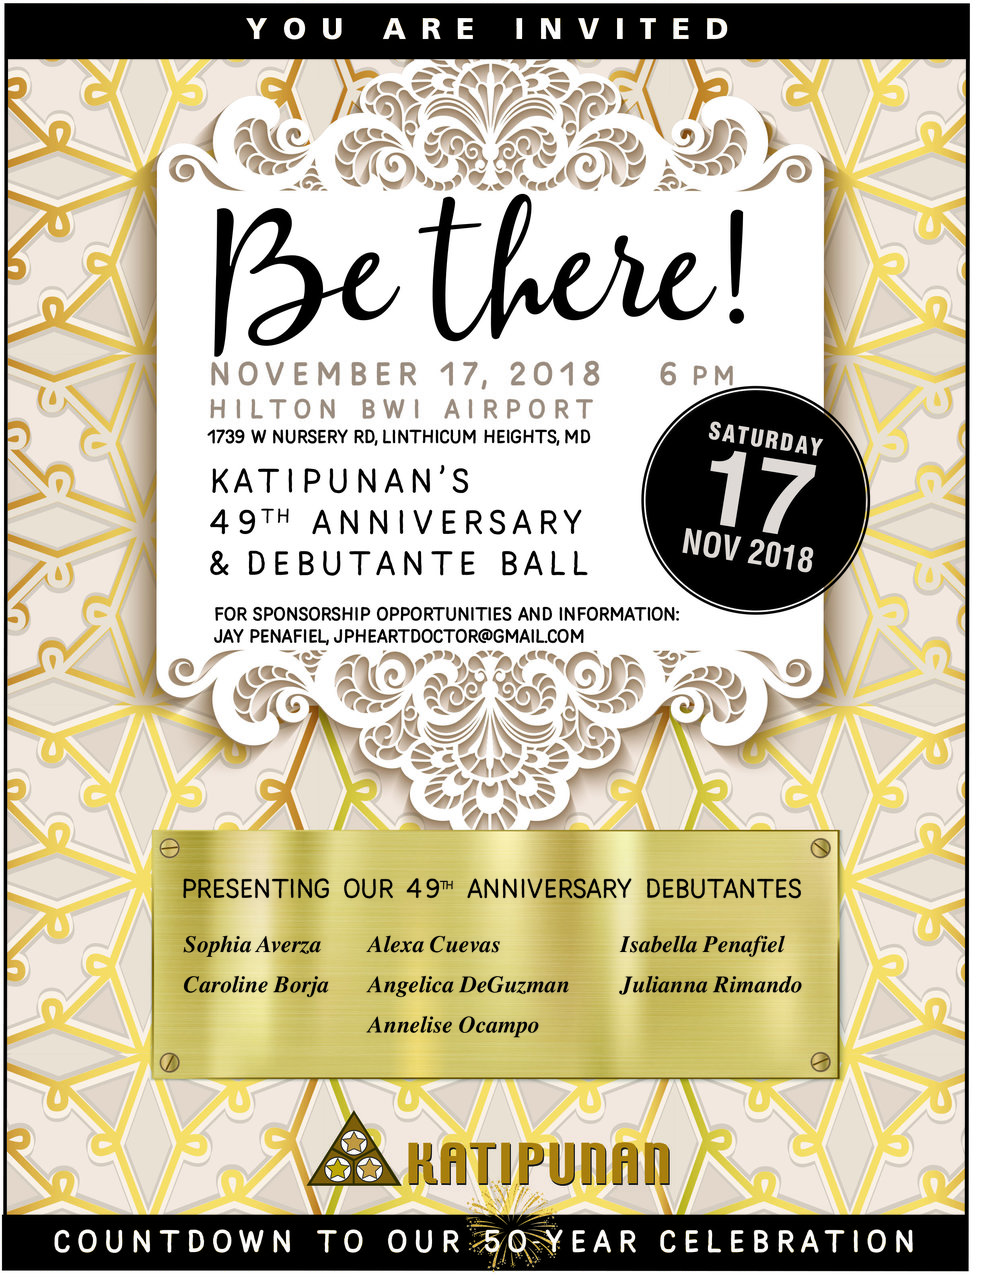 KatipunanGala Save the Date 2018.jpg